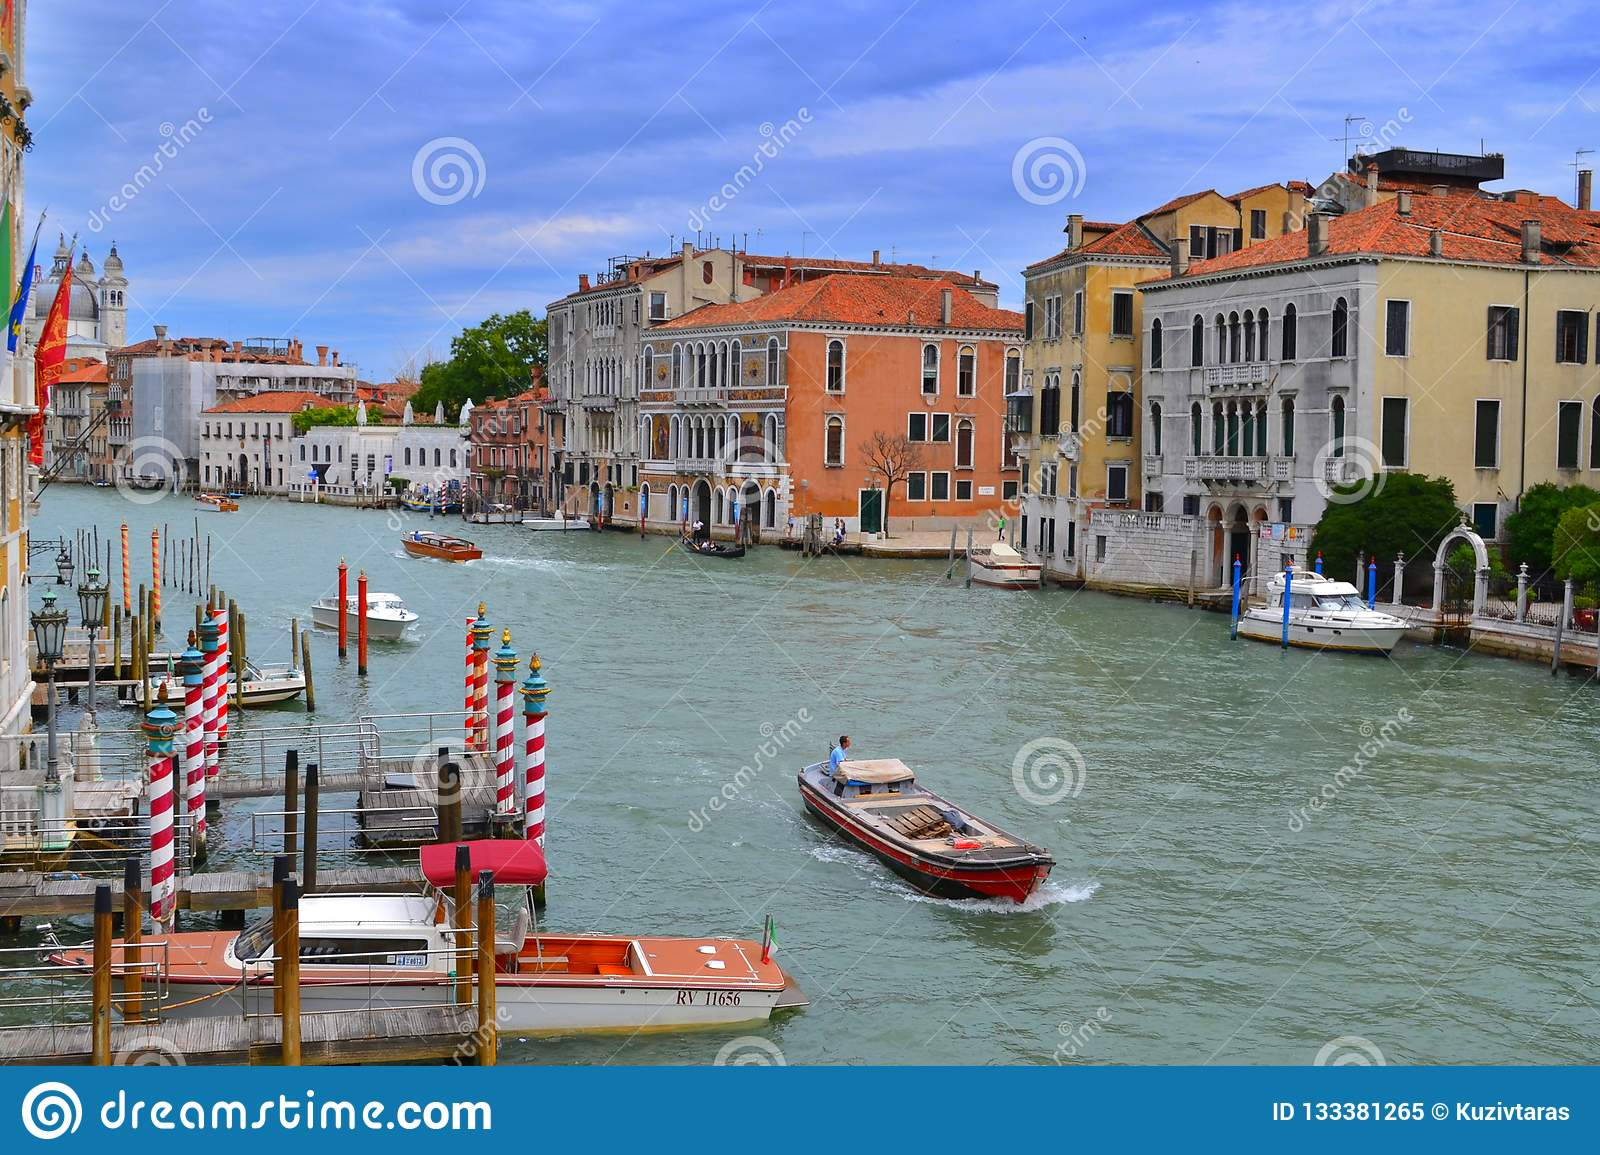 Grand Canal a Venezia, case colorate, bacini, navi, gondole e bandiere